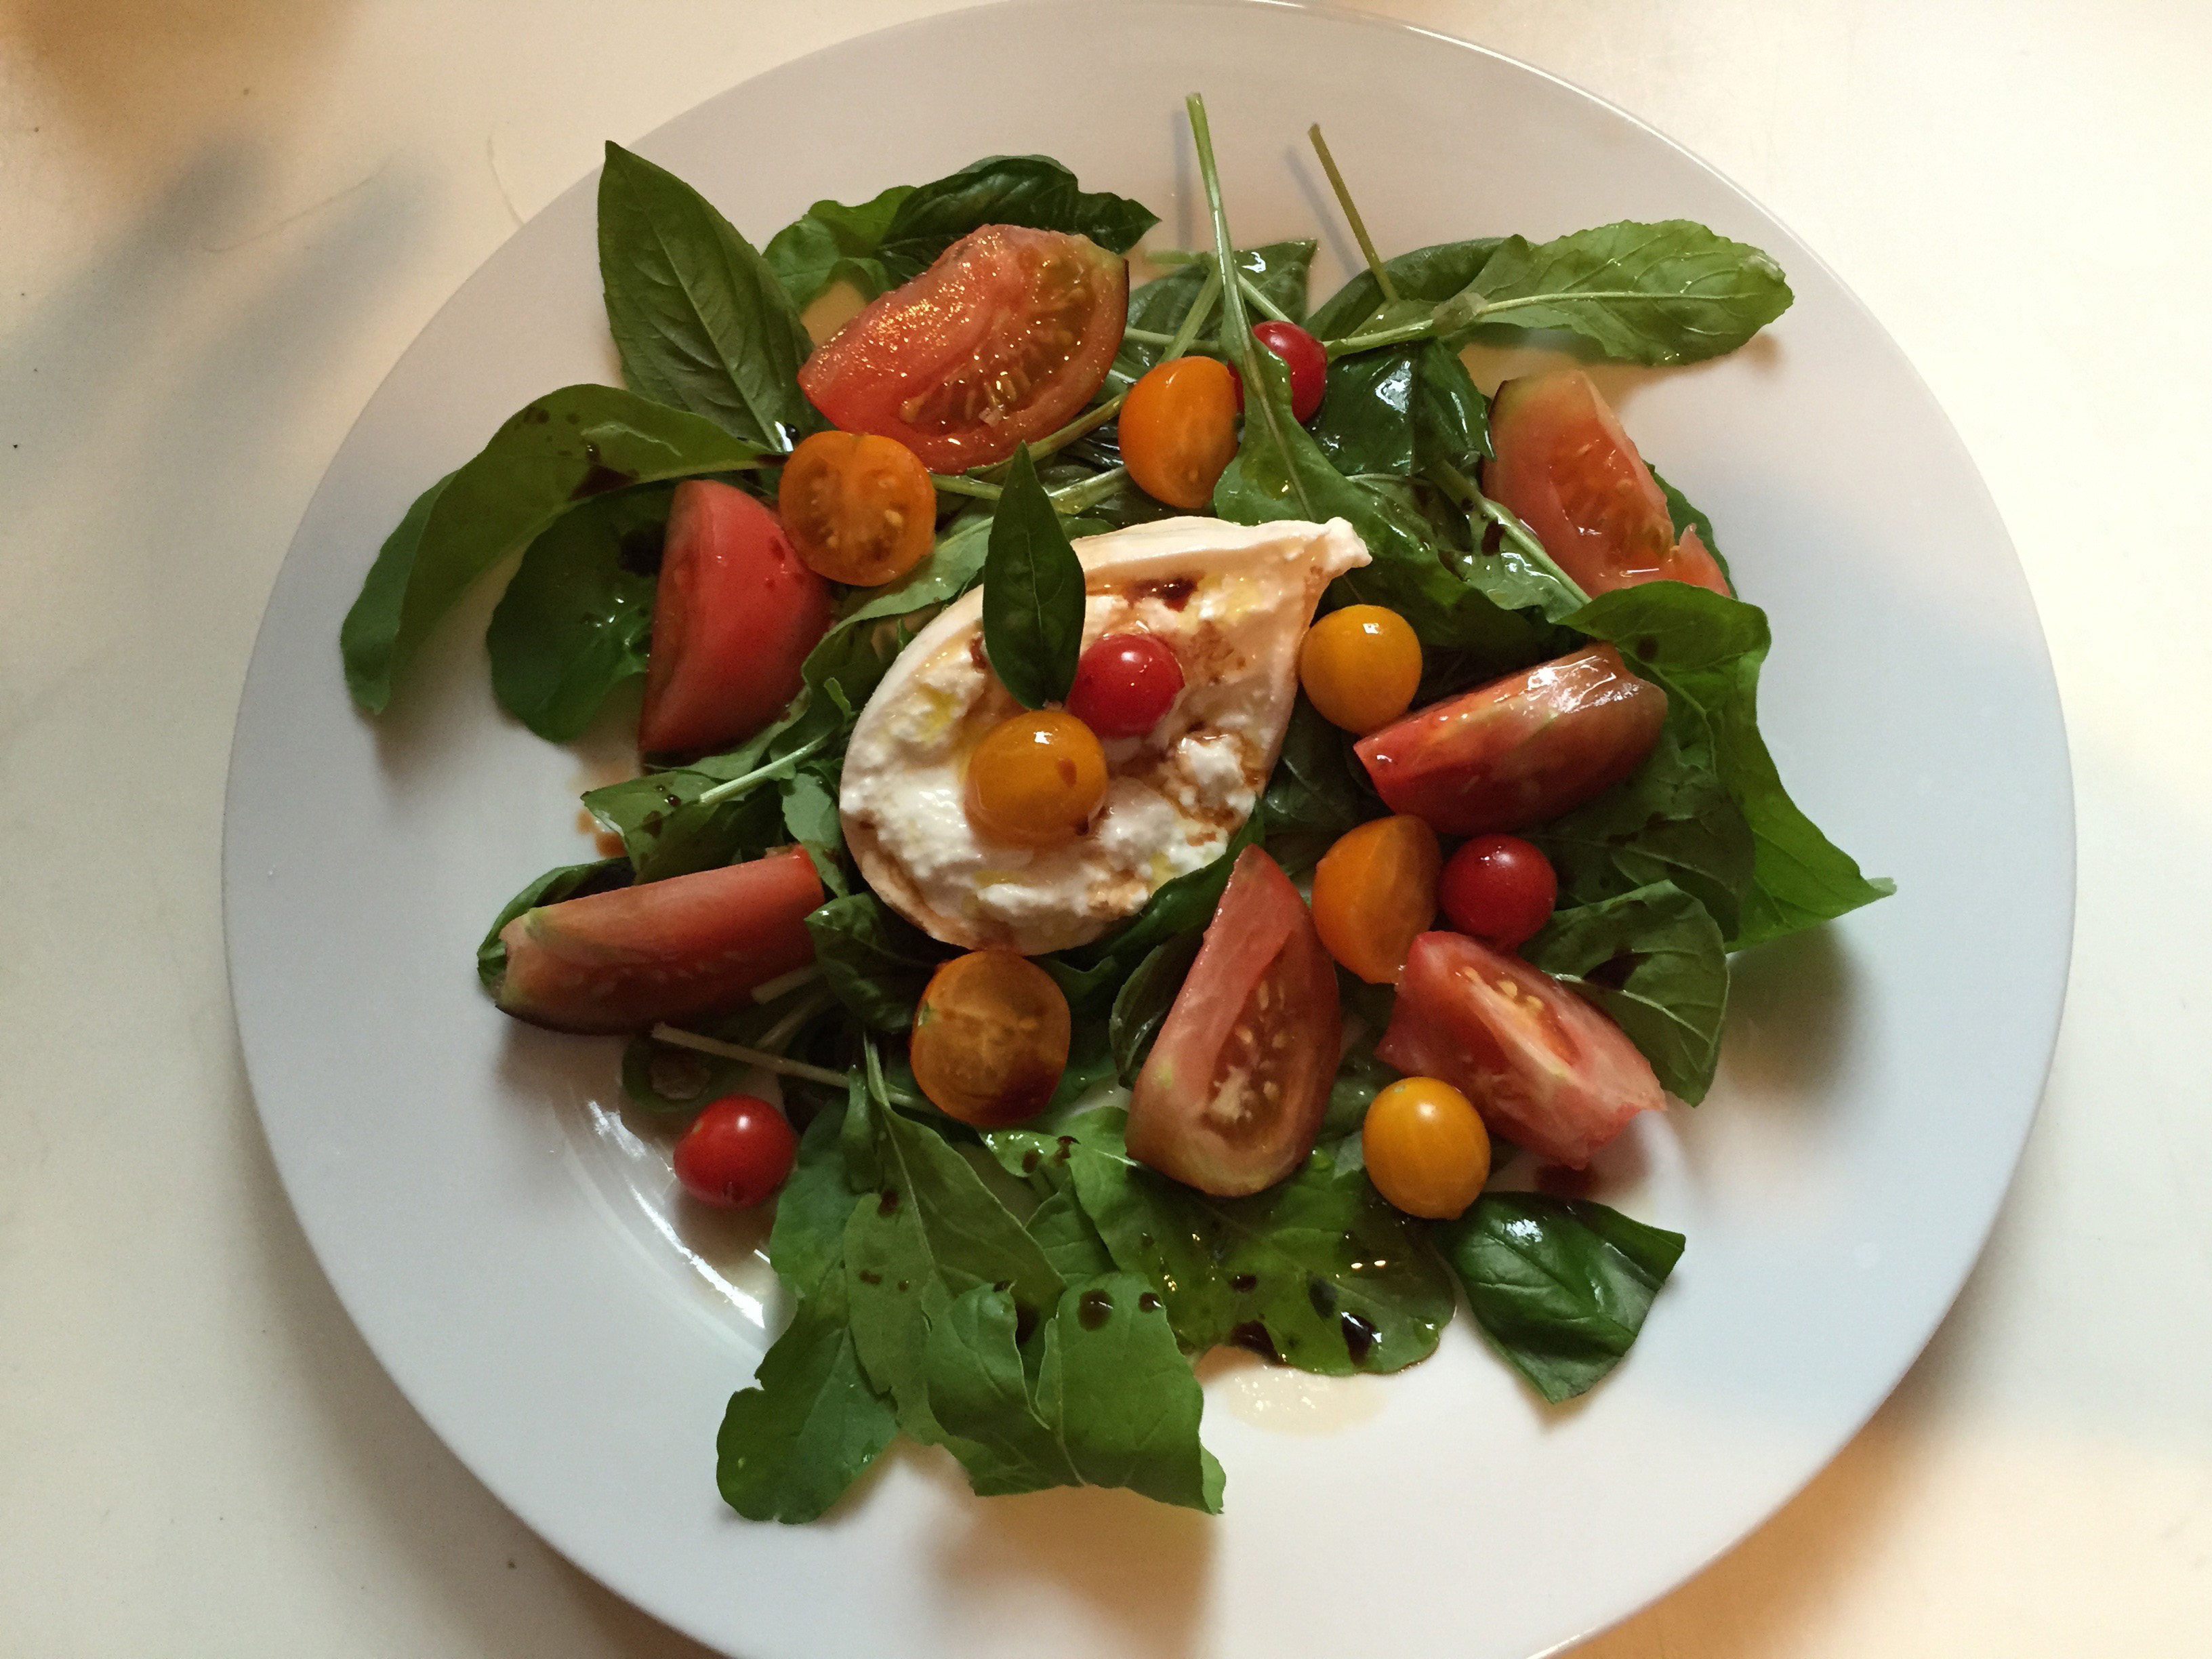 Buratta, Arugula & Heirloom Tomatoes